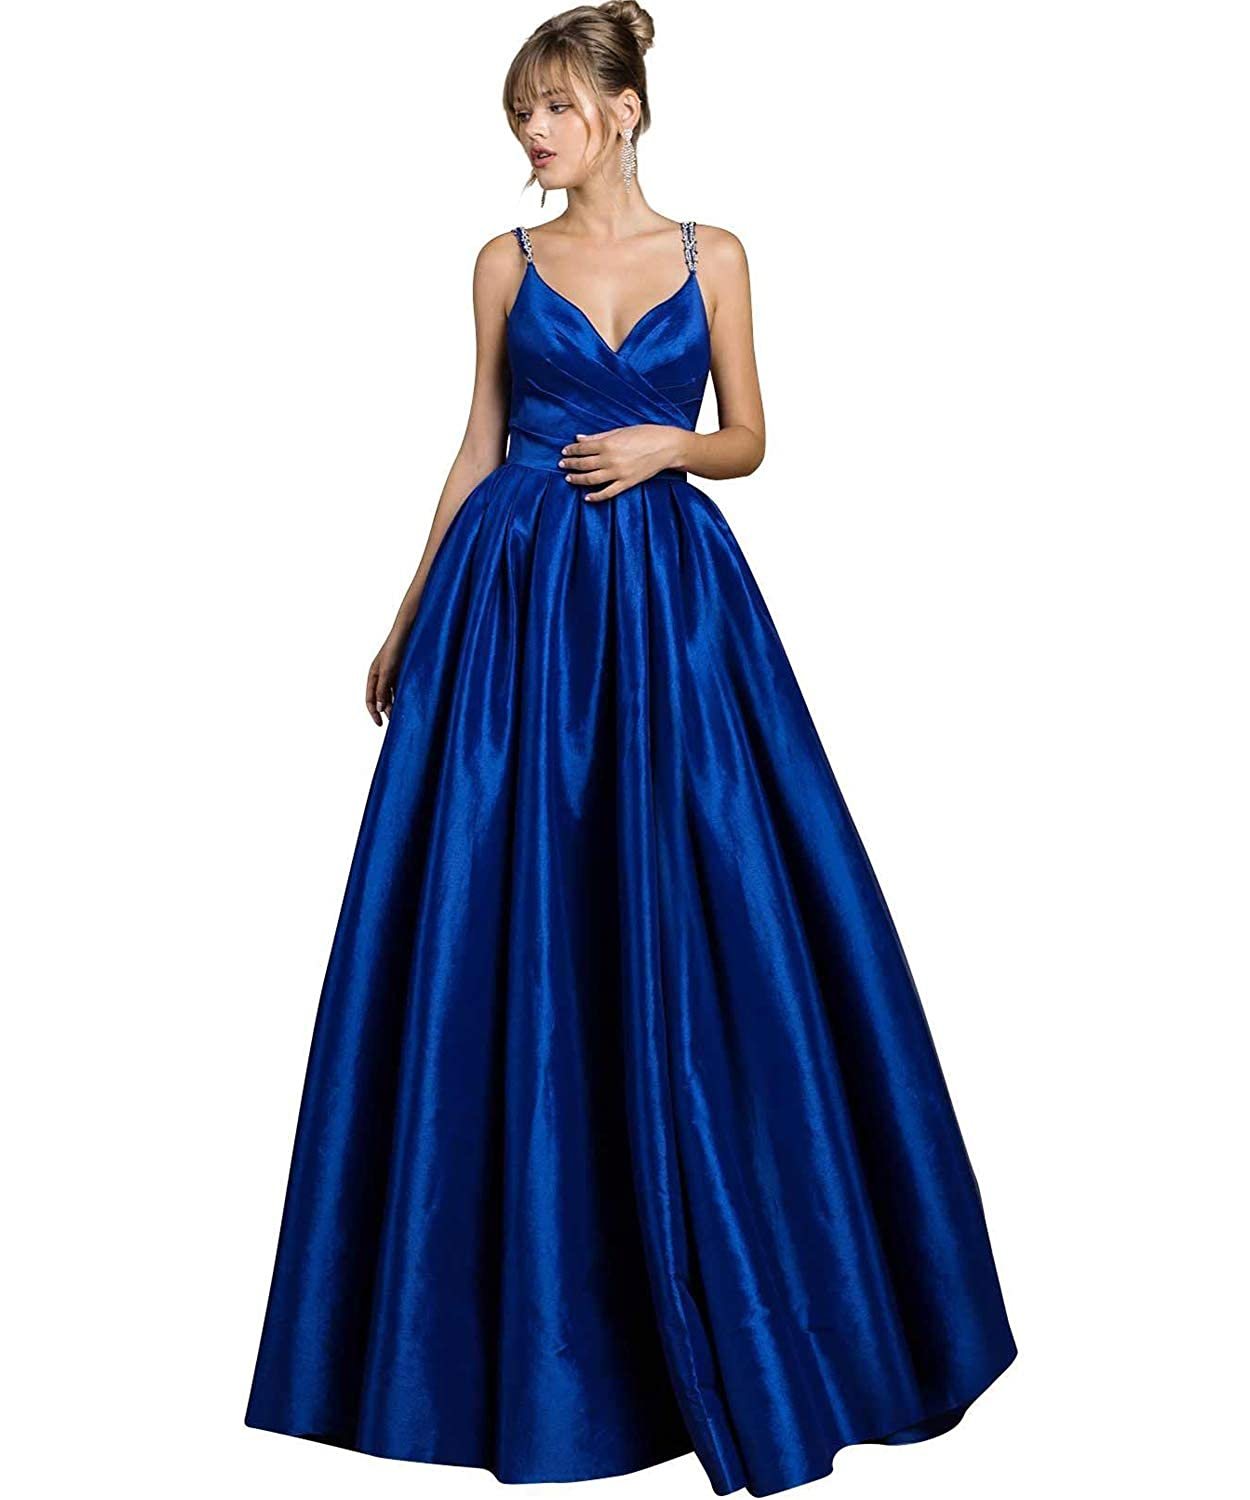 Royal bluee Yilis Women's Beaded Spaghetti Straps V Neck Satin Aline Evening Prom Dress Long Formal Gown with Pockets